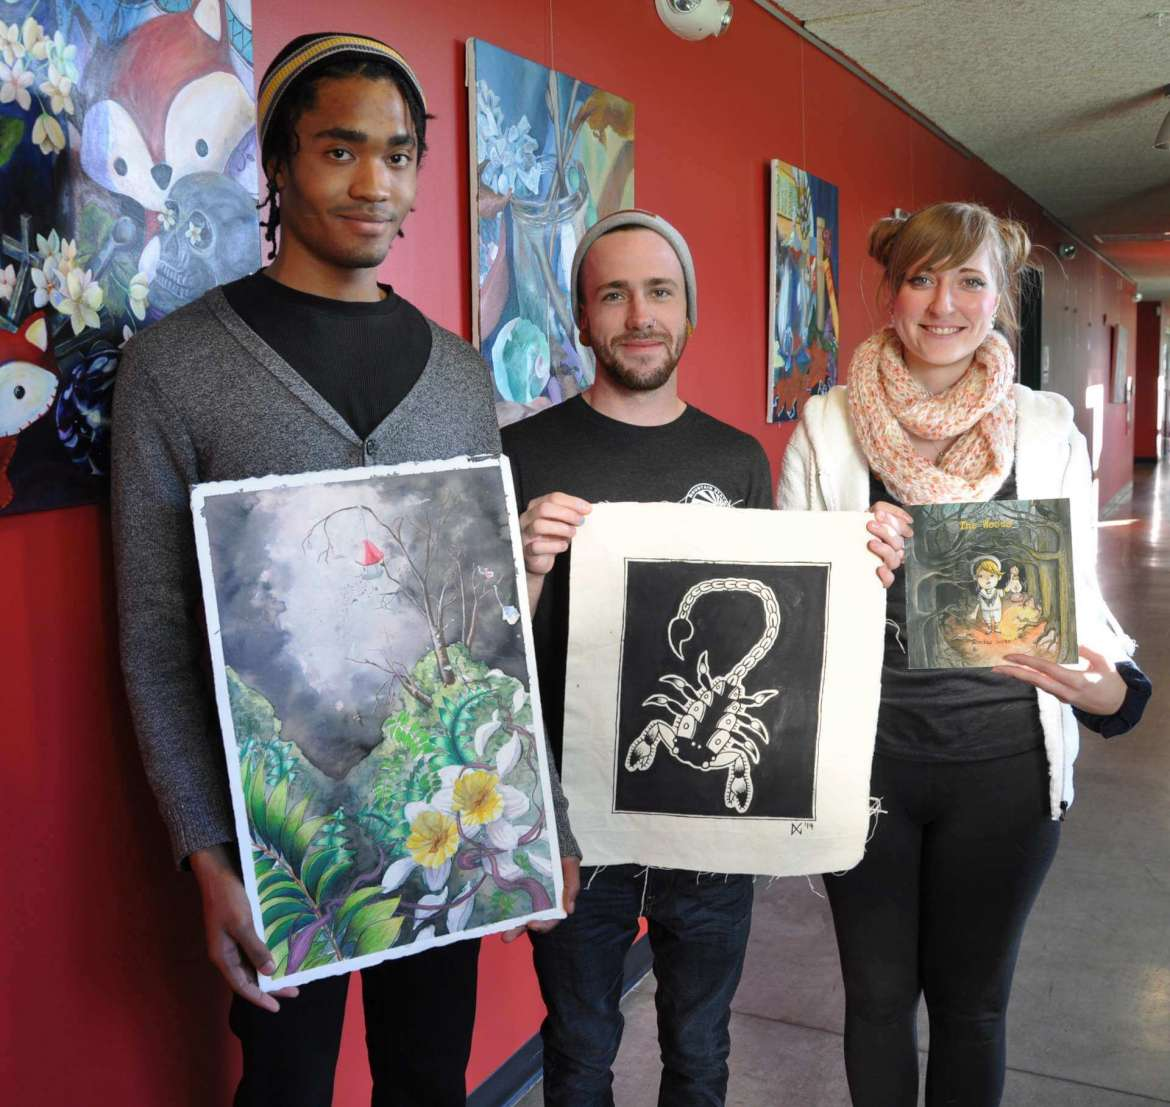 Shepherd University art students who are selling work at the 2nd annual Art Market December 5 include, left to right, Caliph Green of Winchester, Virginia, Wilson Gross of Morgantown, and Dorothy Gertz of Hagerstown, Maryland.